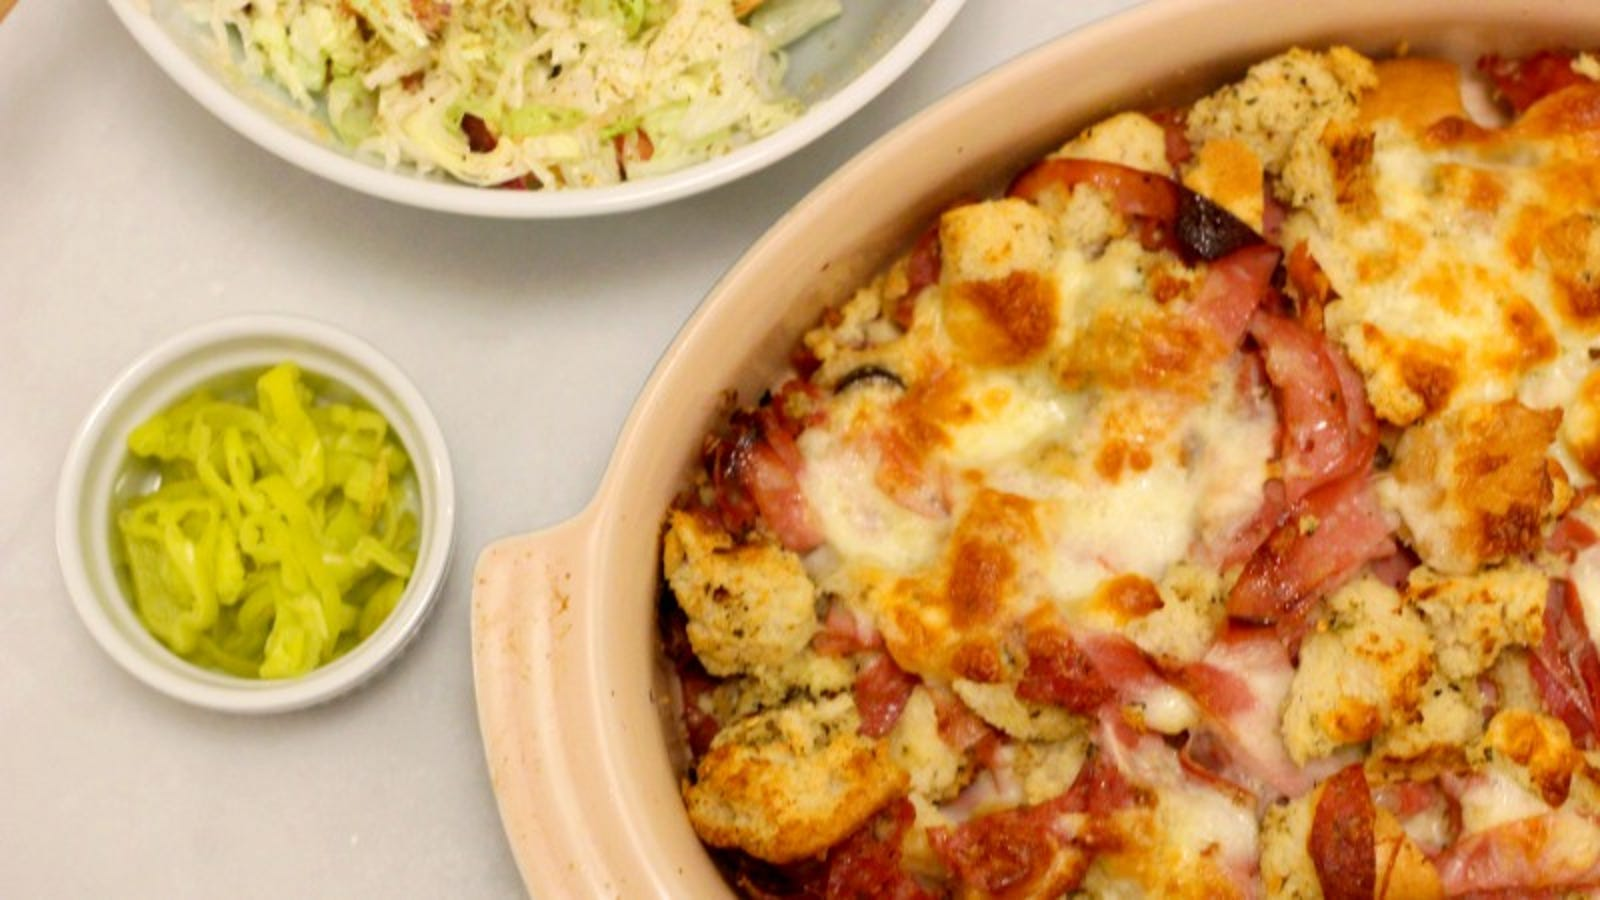 This Italian Grinder Casserole Will Improve Your Quality of Life